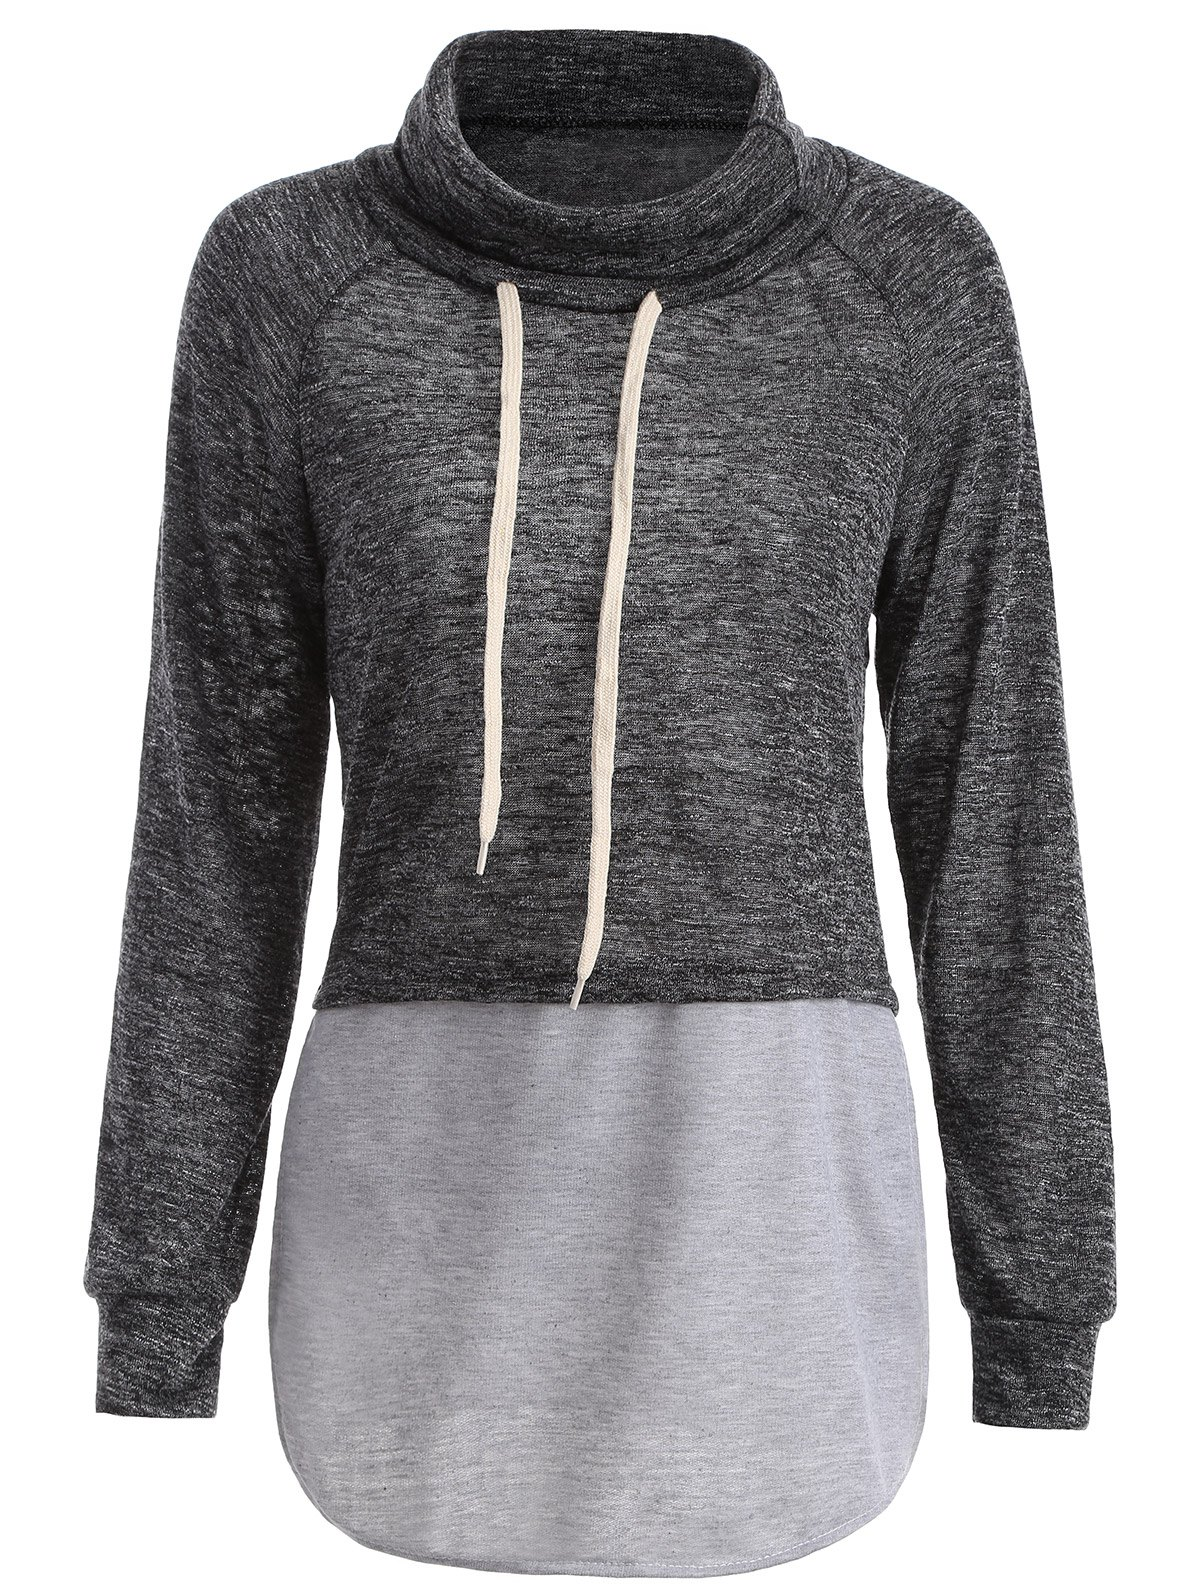 Cheap Color Block High Neck String Sweatshirt